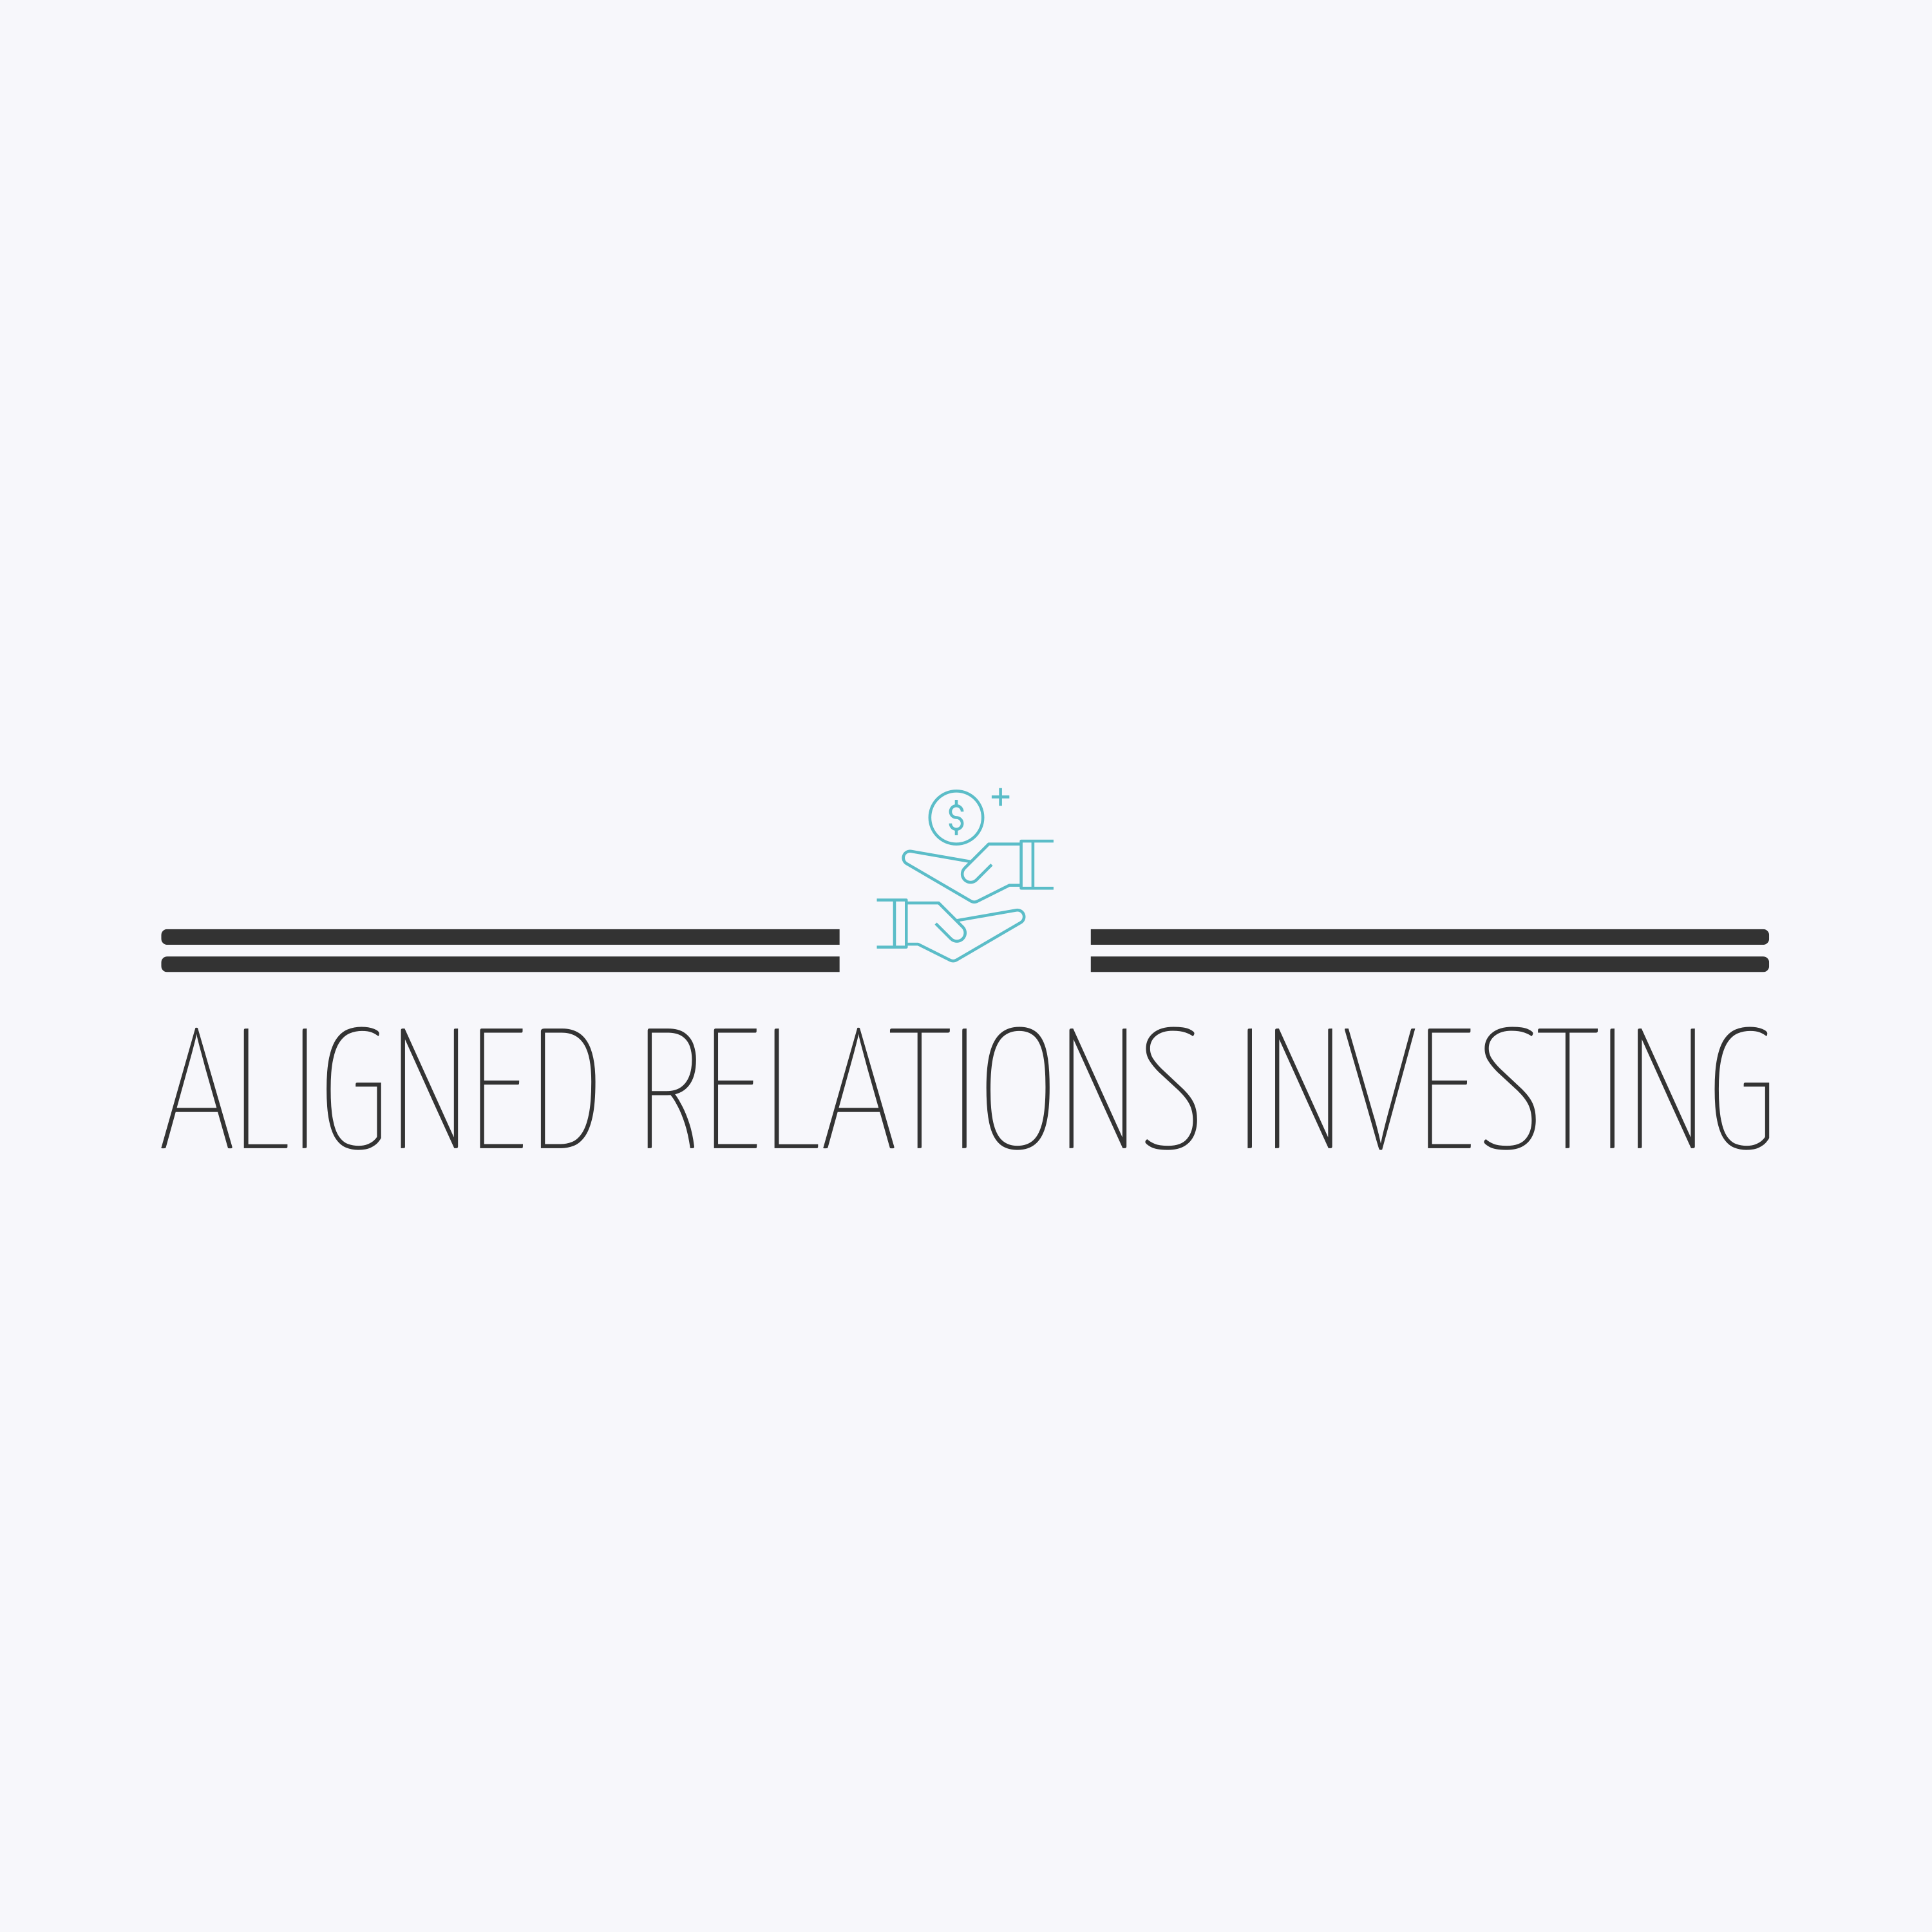 ALIGNED RELATIONS INVESTING